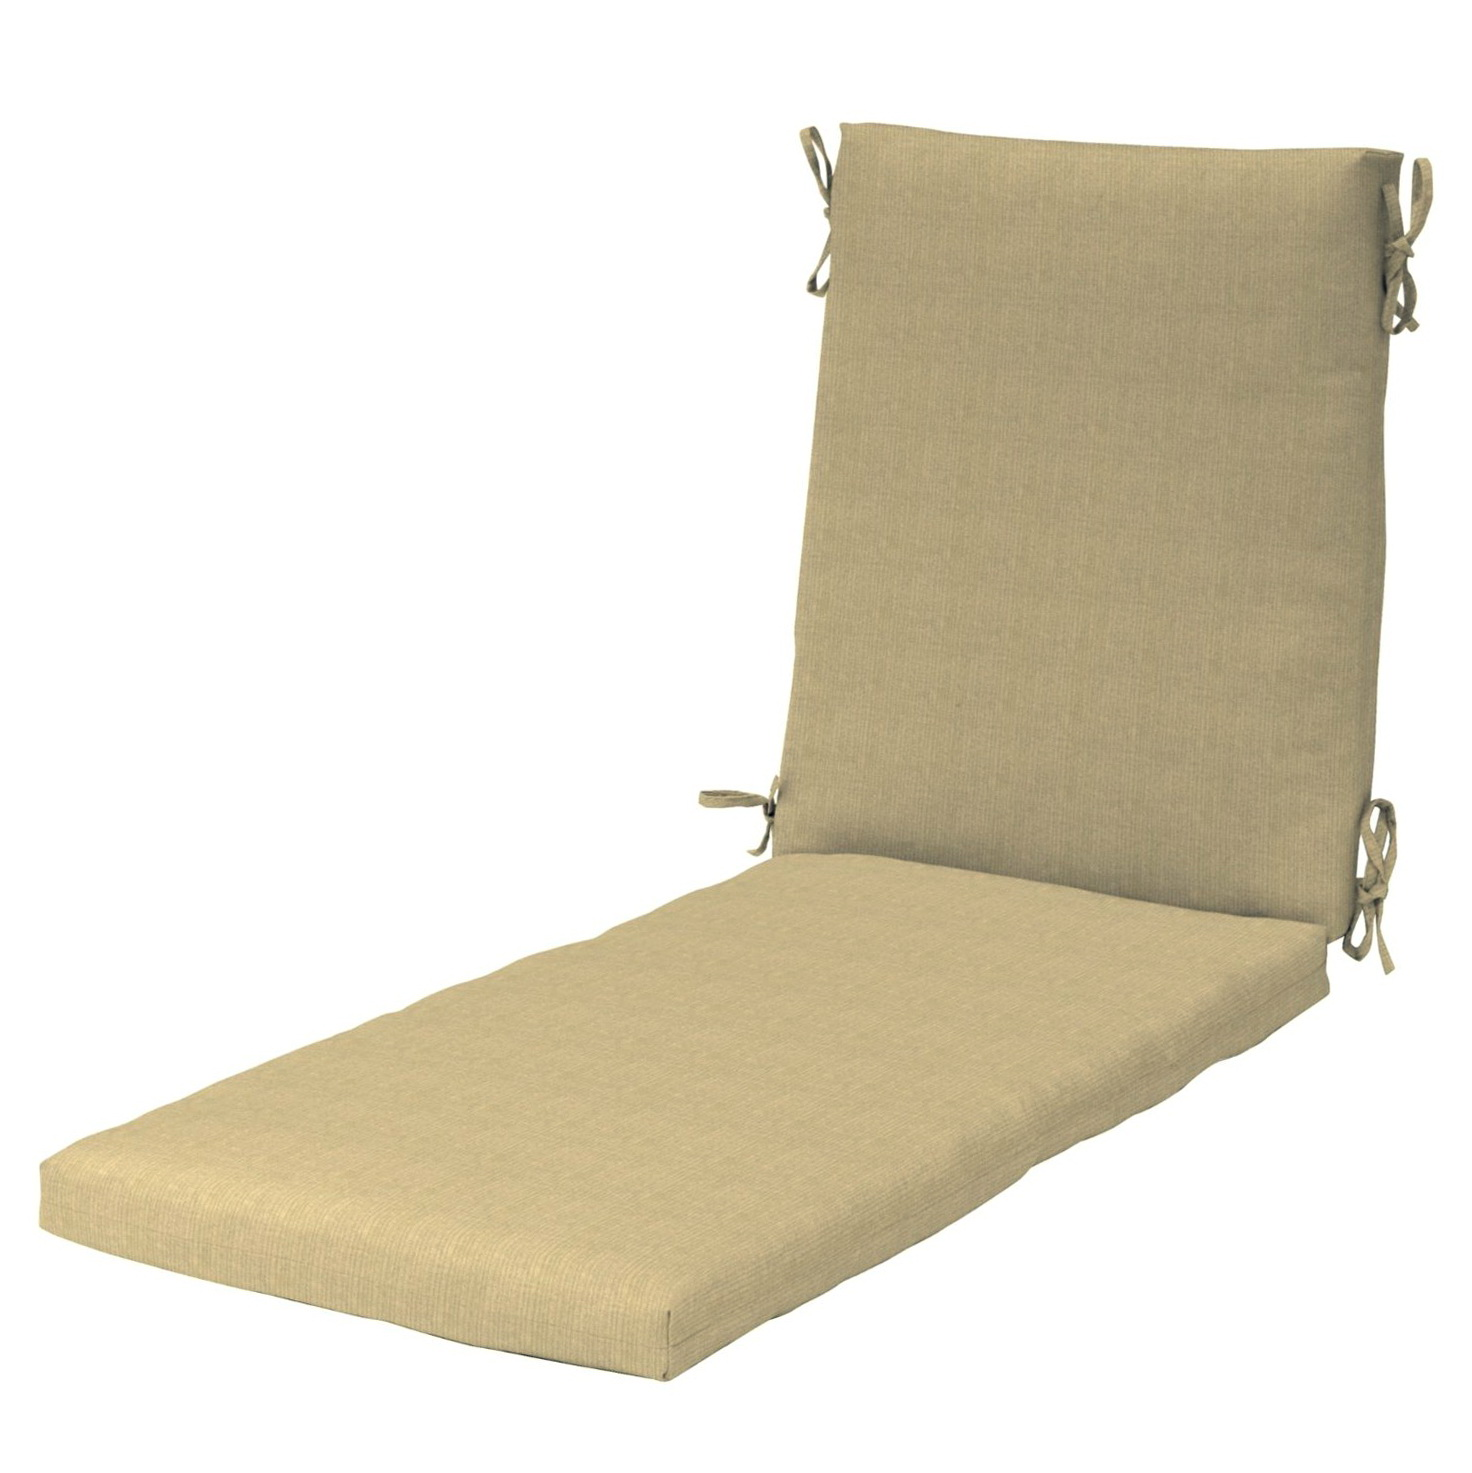 Cusion Sale: Patio Chair Cushions On Sale